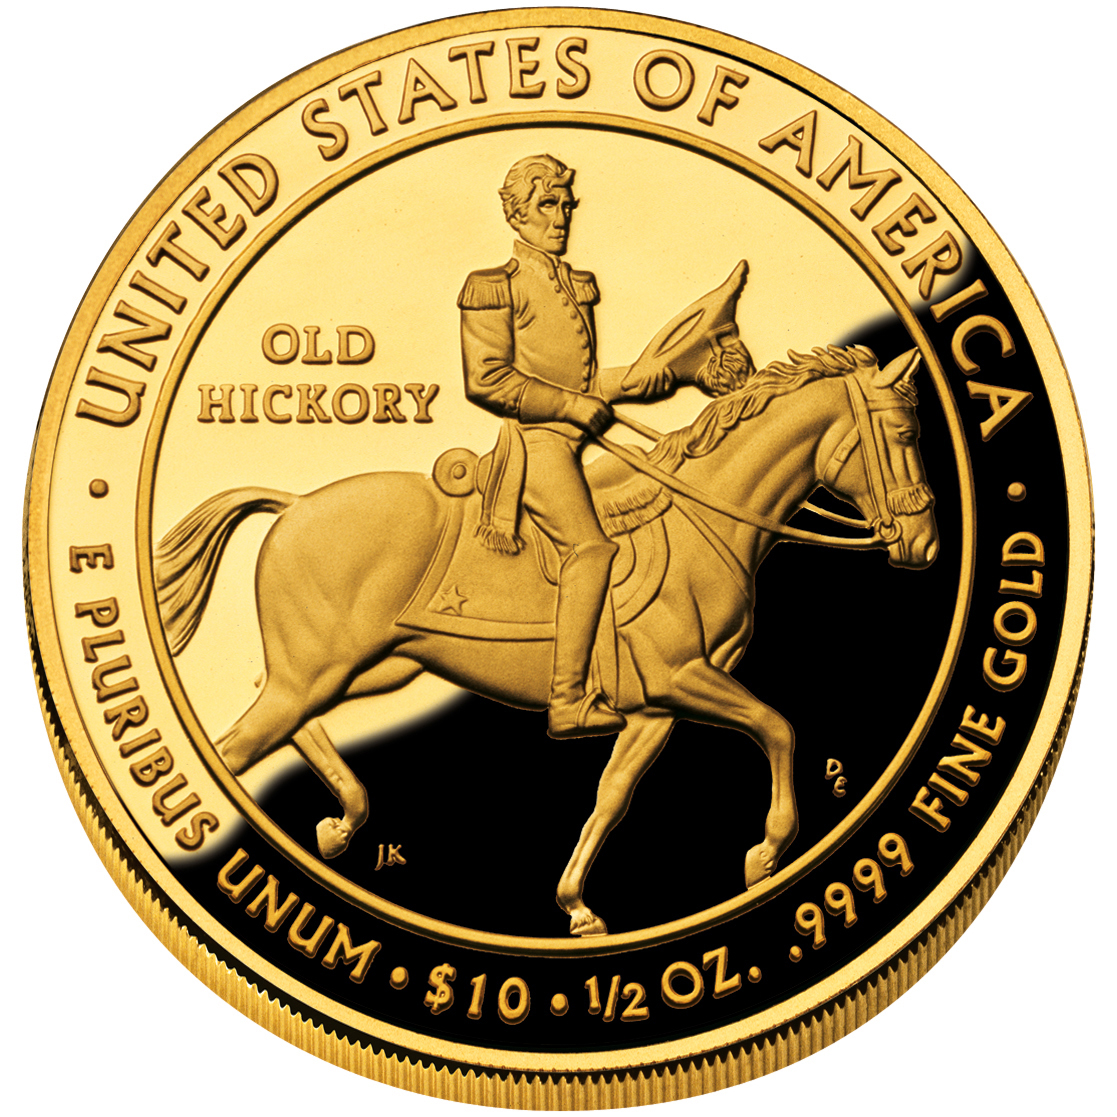 2008 First Spouse Gold Coin Jackson Liberty Proof Reverse